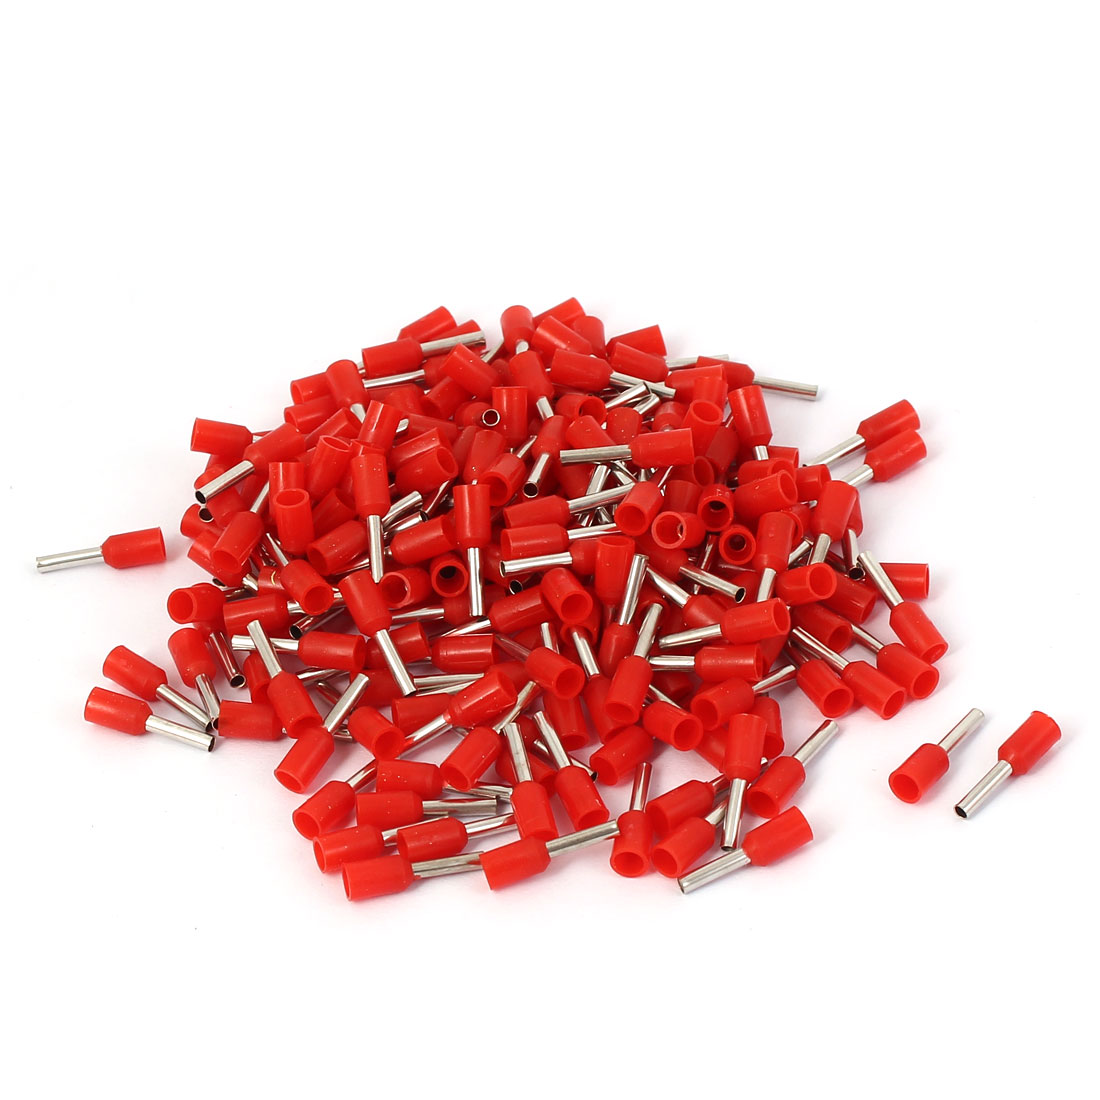 E1008 Tube Style Electric Wire Heads Sleeve Crimp Insulated Terminal 200pcs